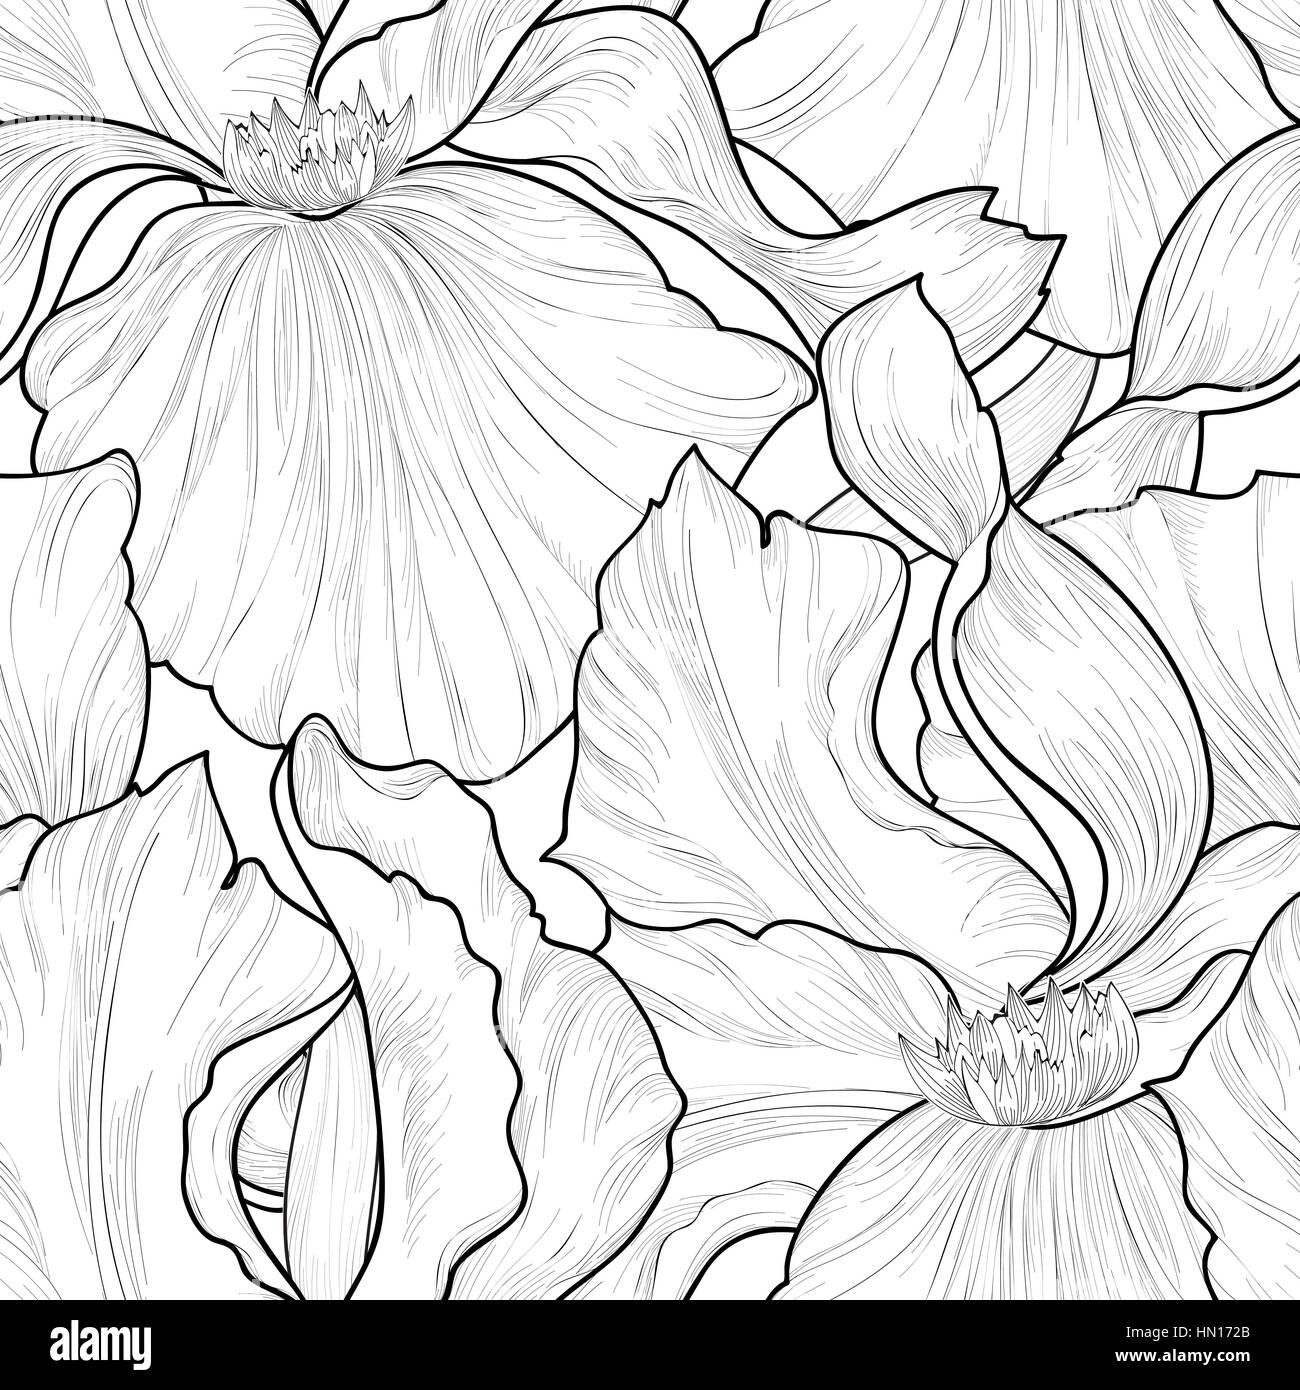 Floral seamless pattern. Flower iris etching background. Abstract floral ornamental texture with flowers. Spring - Stock Image